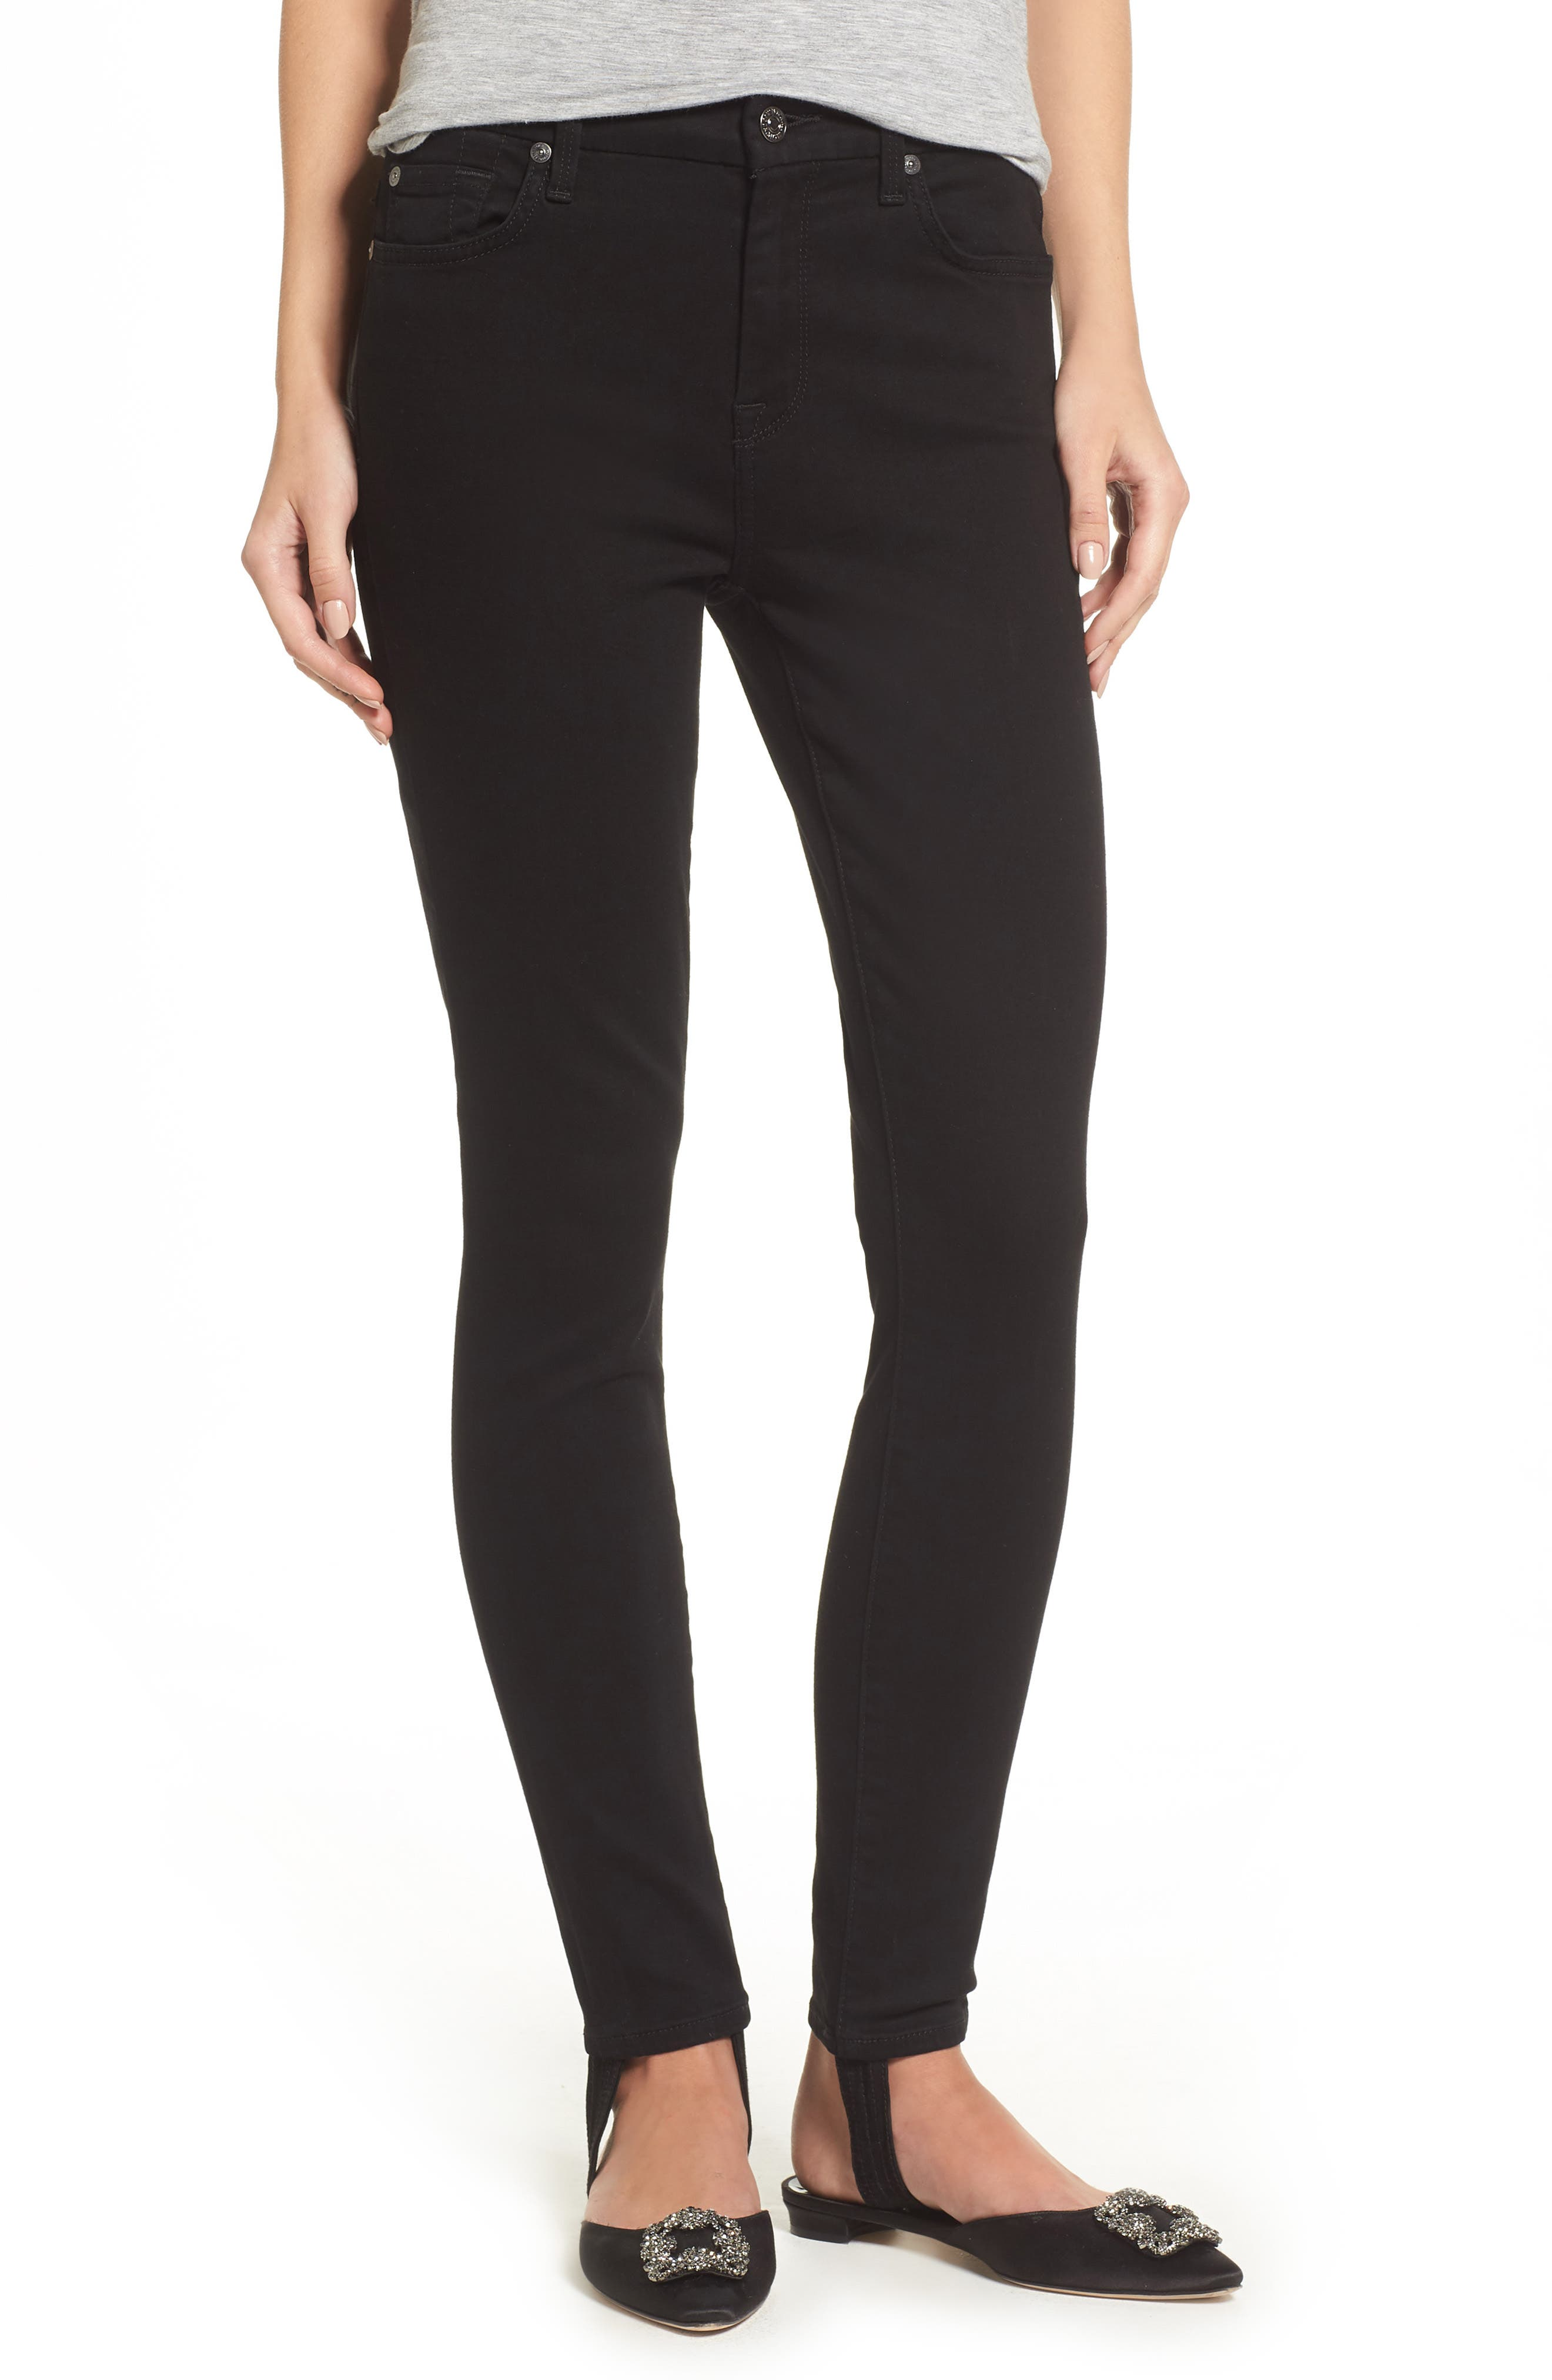 Alternate Image 1 Selected - 7 For All Mankind® b(air) High Waist Ankle Skinny Stirrup Jeans